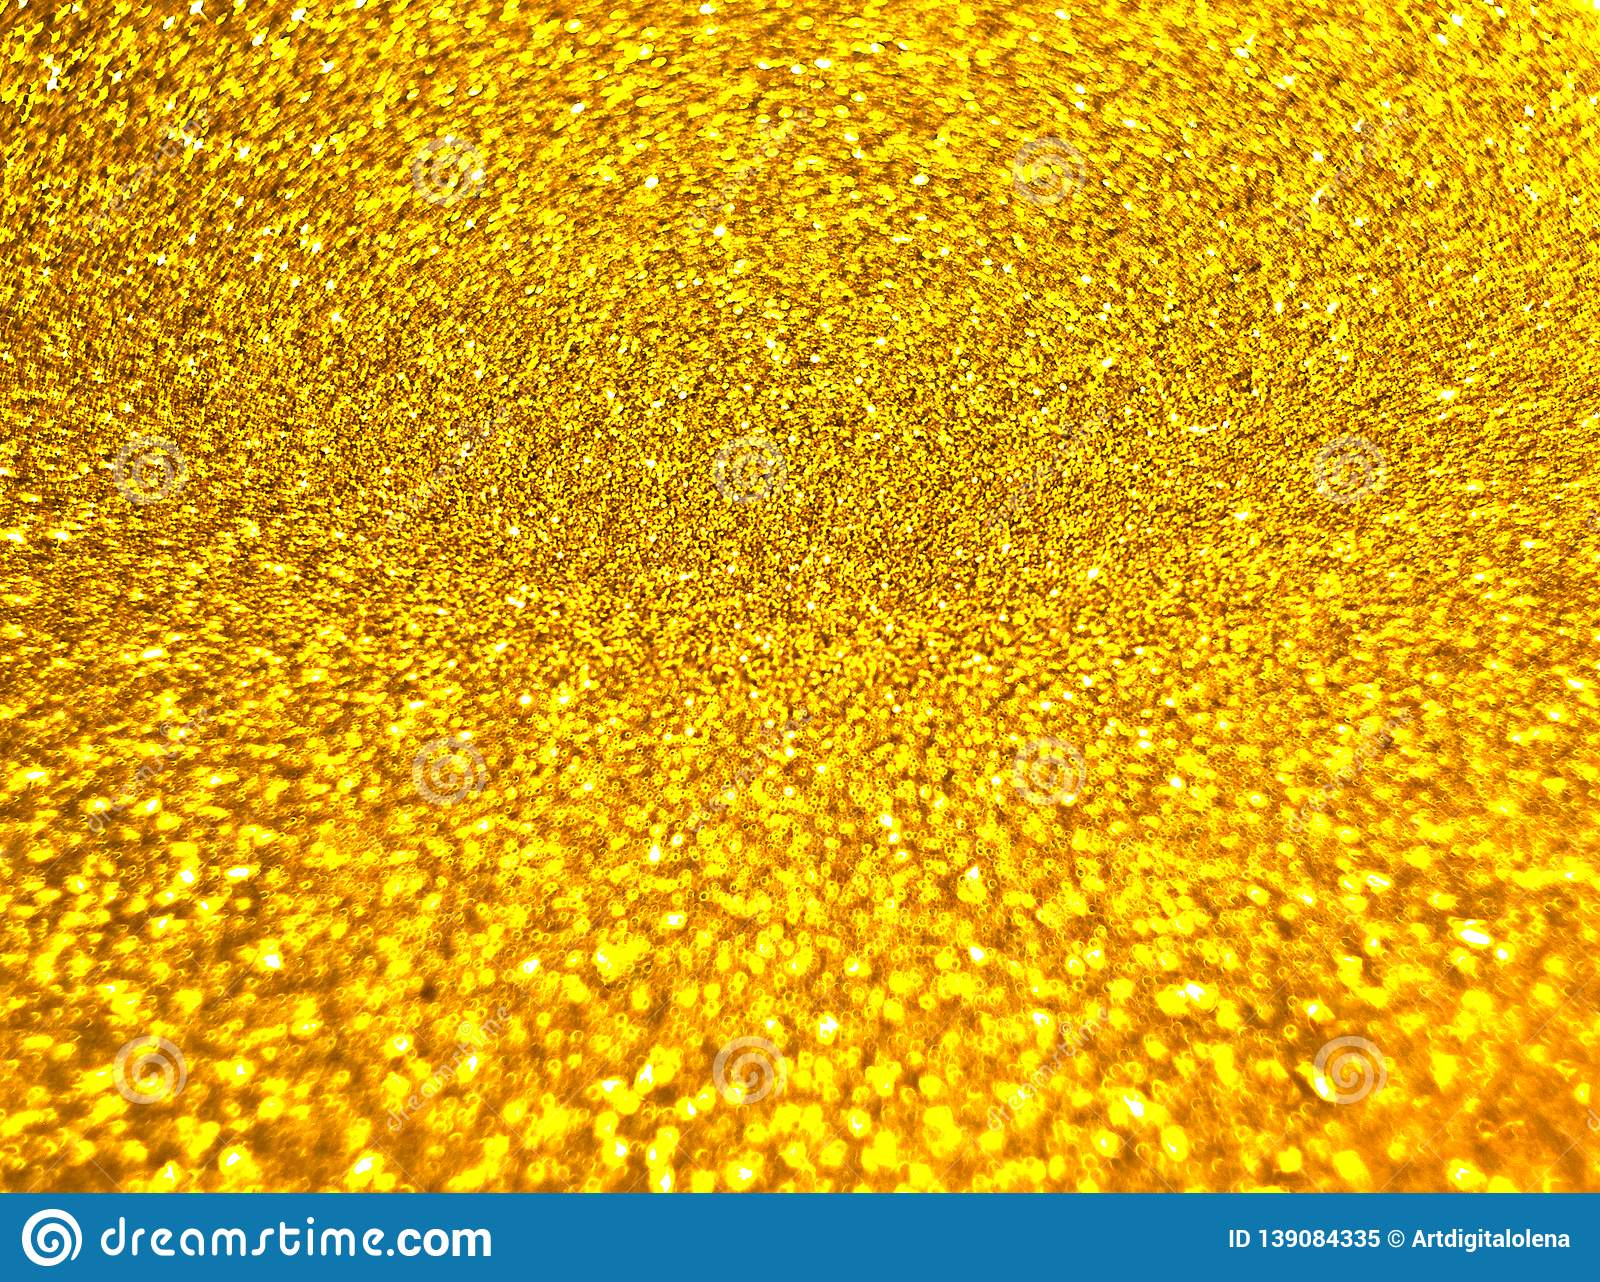 The Golden Background With Shine. Stock Image - Image Of Expensive,  Texture: 139084335